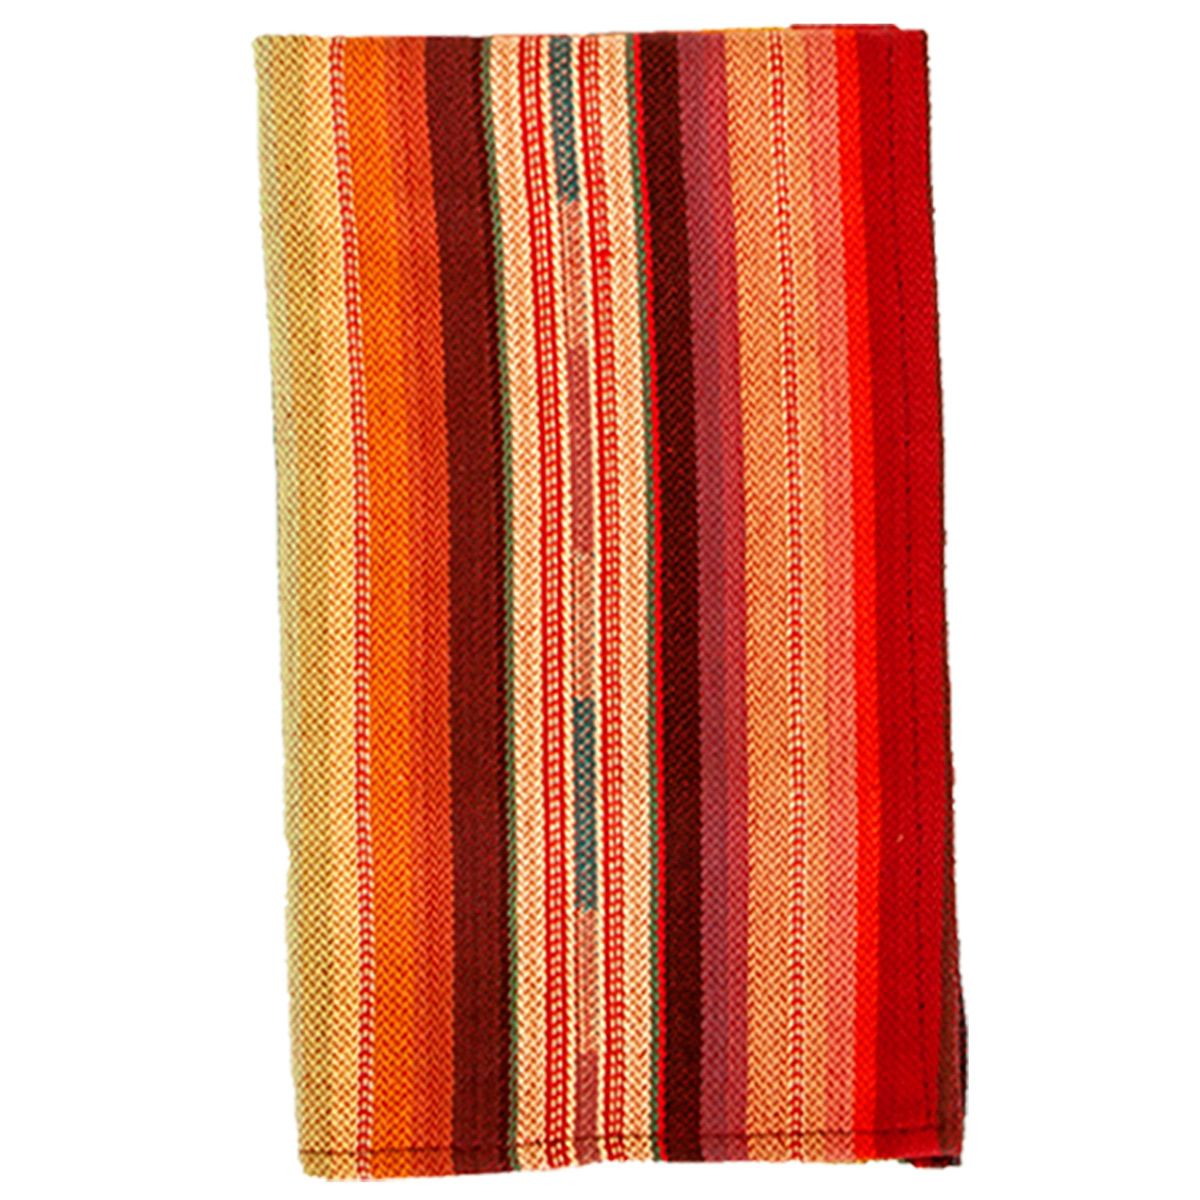 Red Serape Napkins - Set of 4